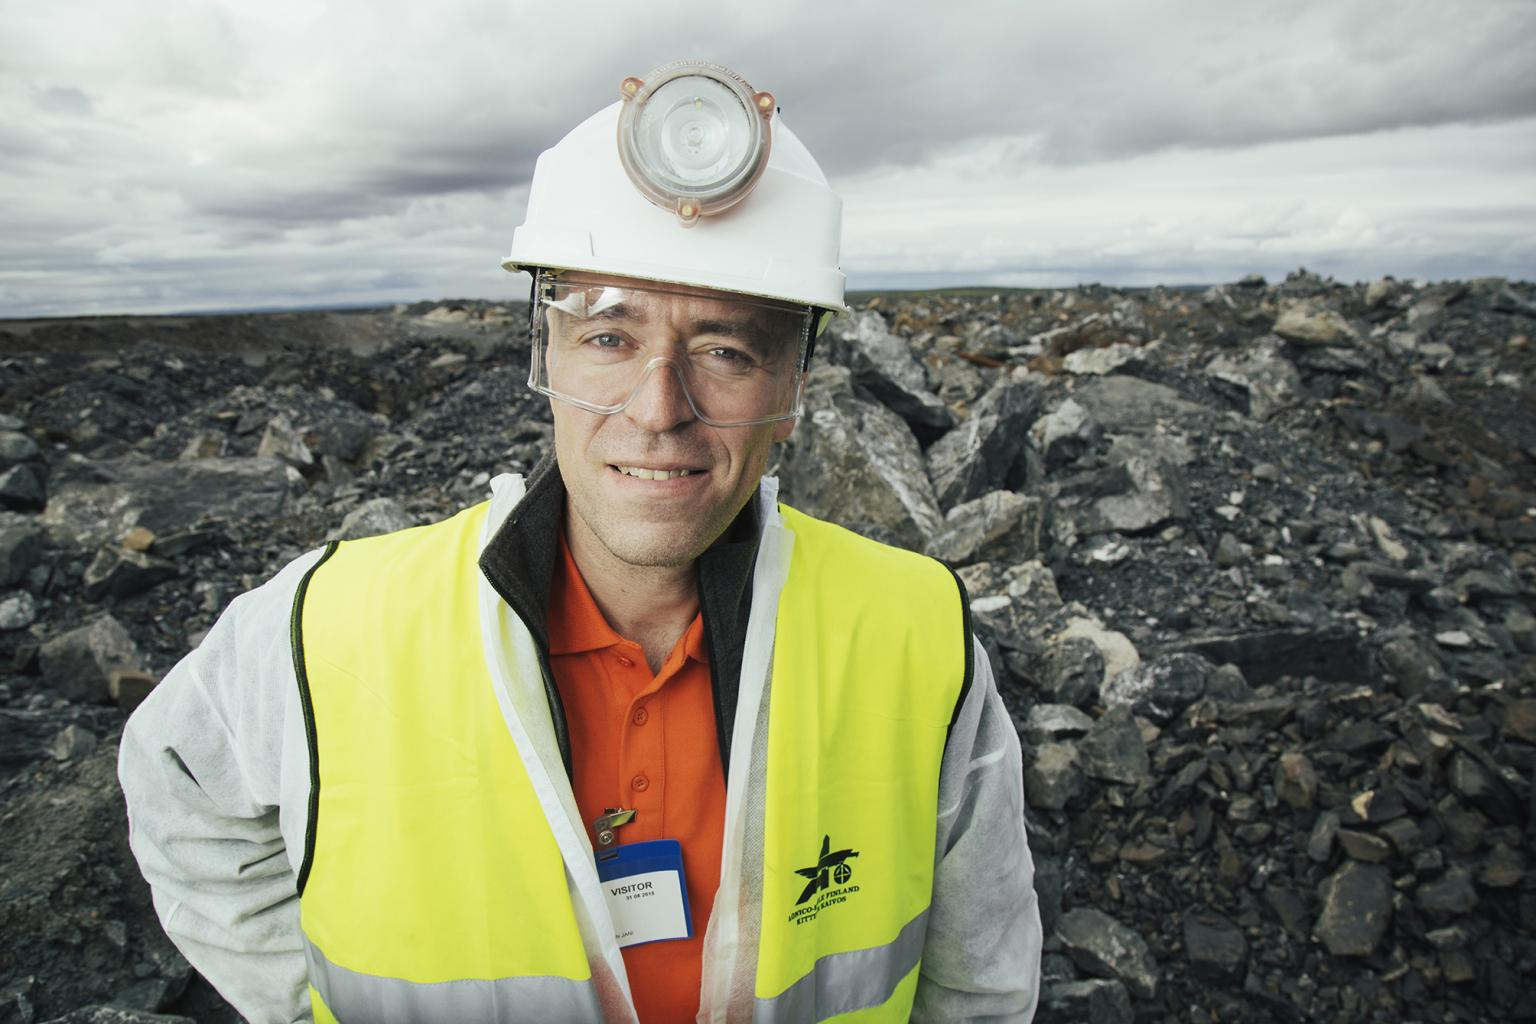 TRB-Raise Borers CEO Jarko Salo says that operator commitment is of particular importance in slot hole boring, where drill tailings are flushed down on the rig and need to be properly managed to prevent the muck from damaging vulnerable components